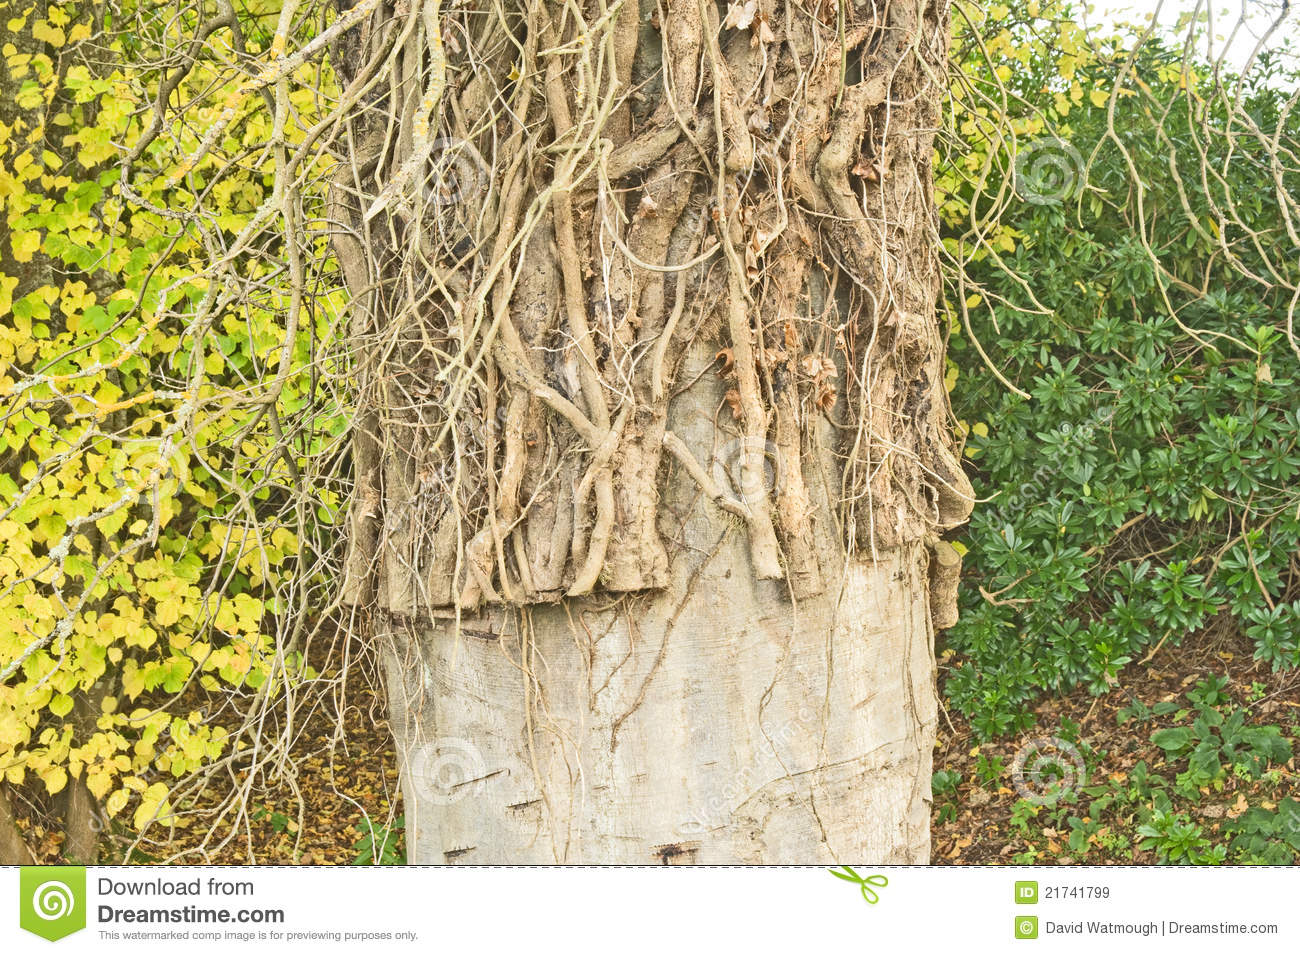 How to Kill Ivy Without Damaging a Tree How to Kill Ivy Without Damaging a Tree new pics